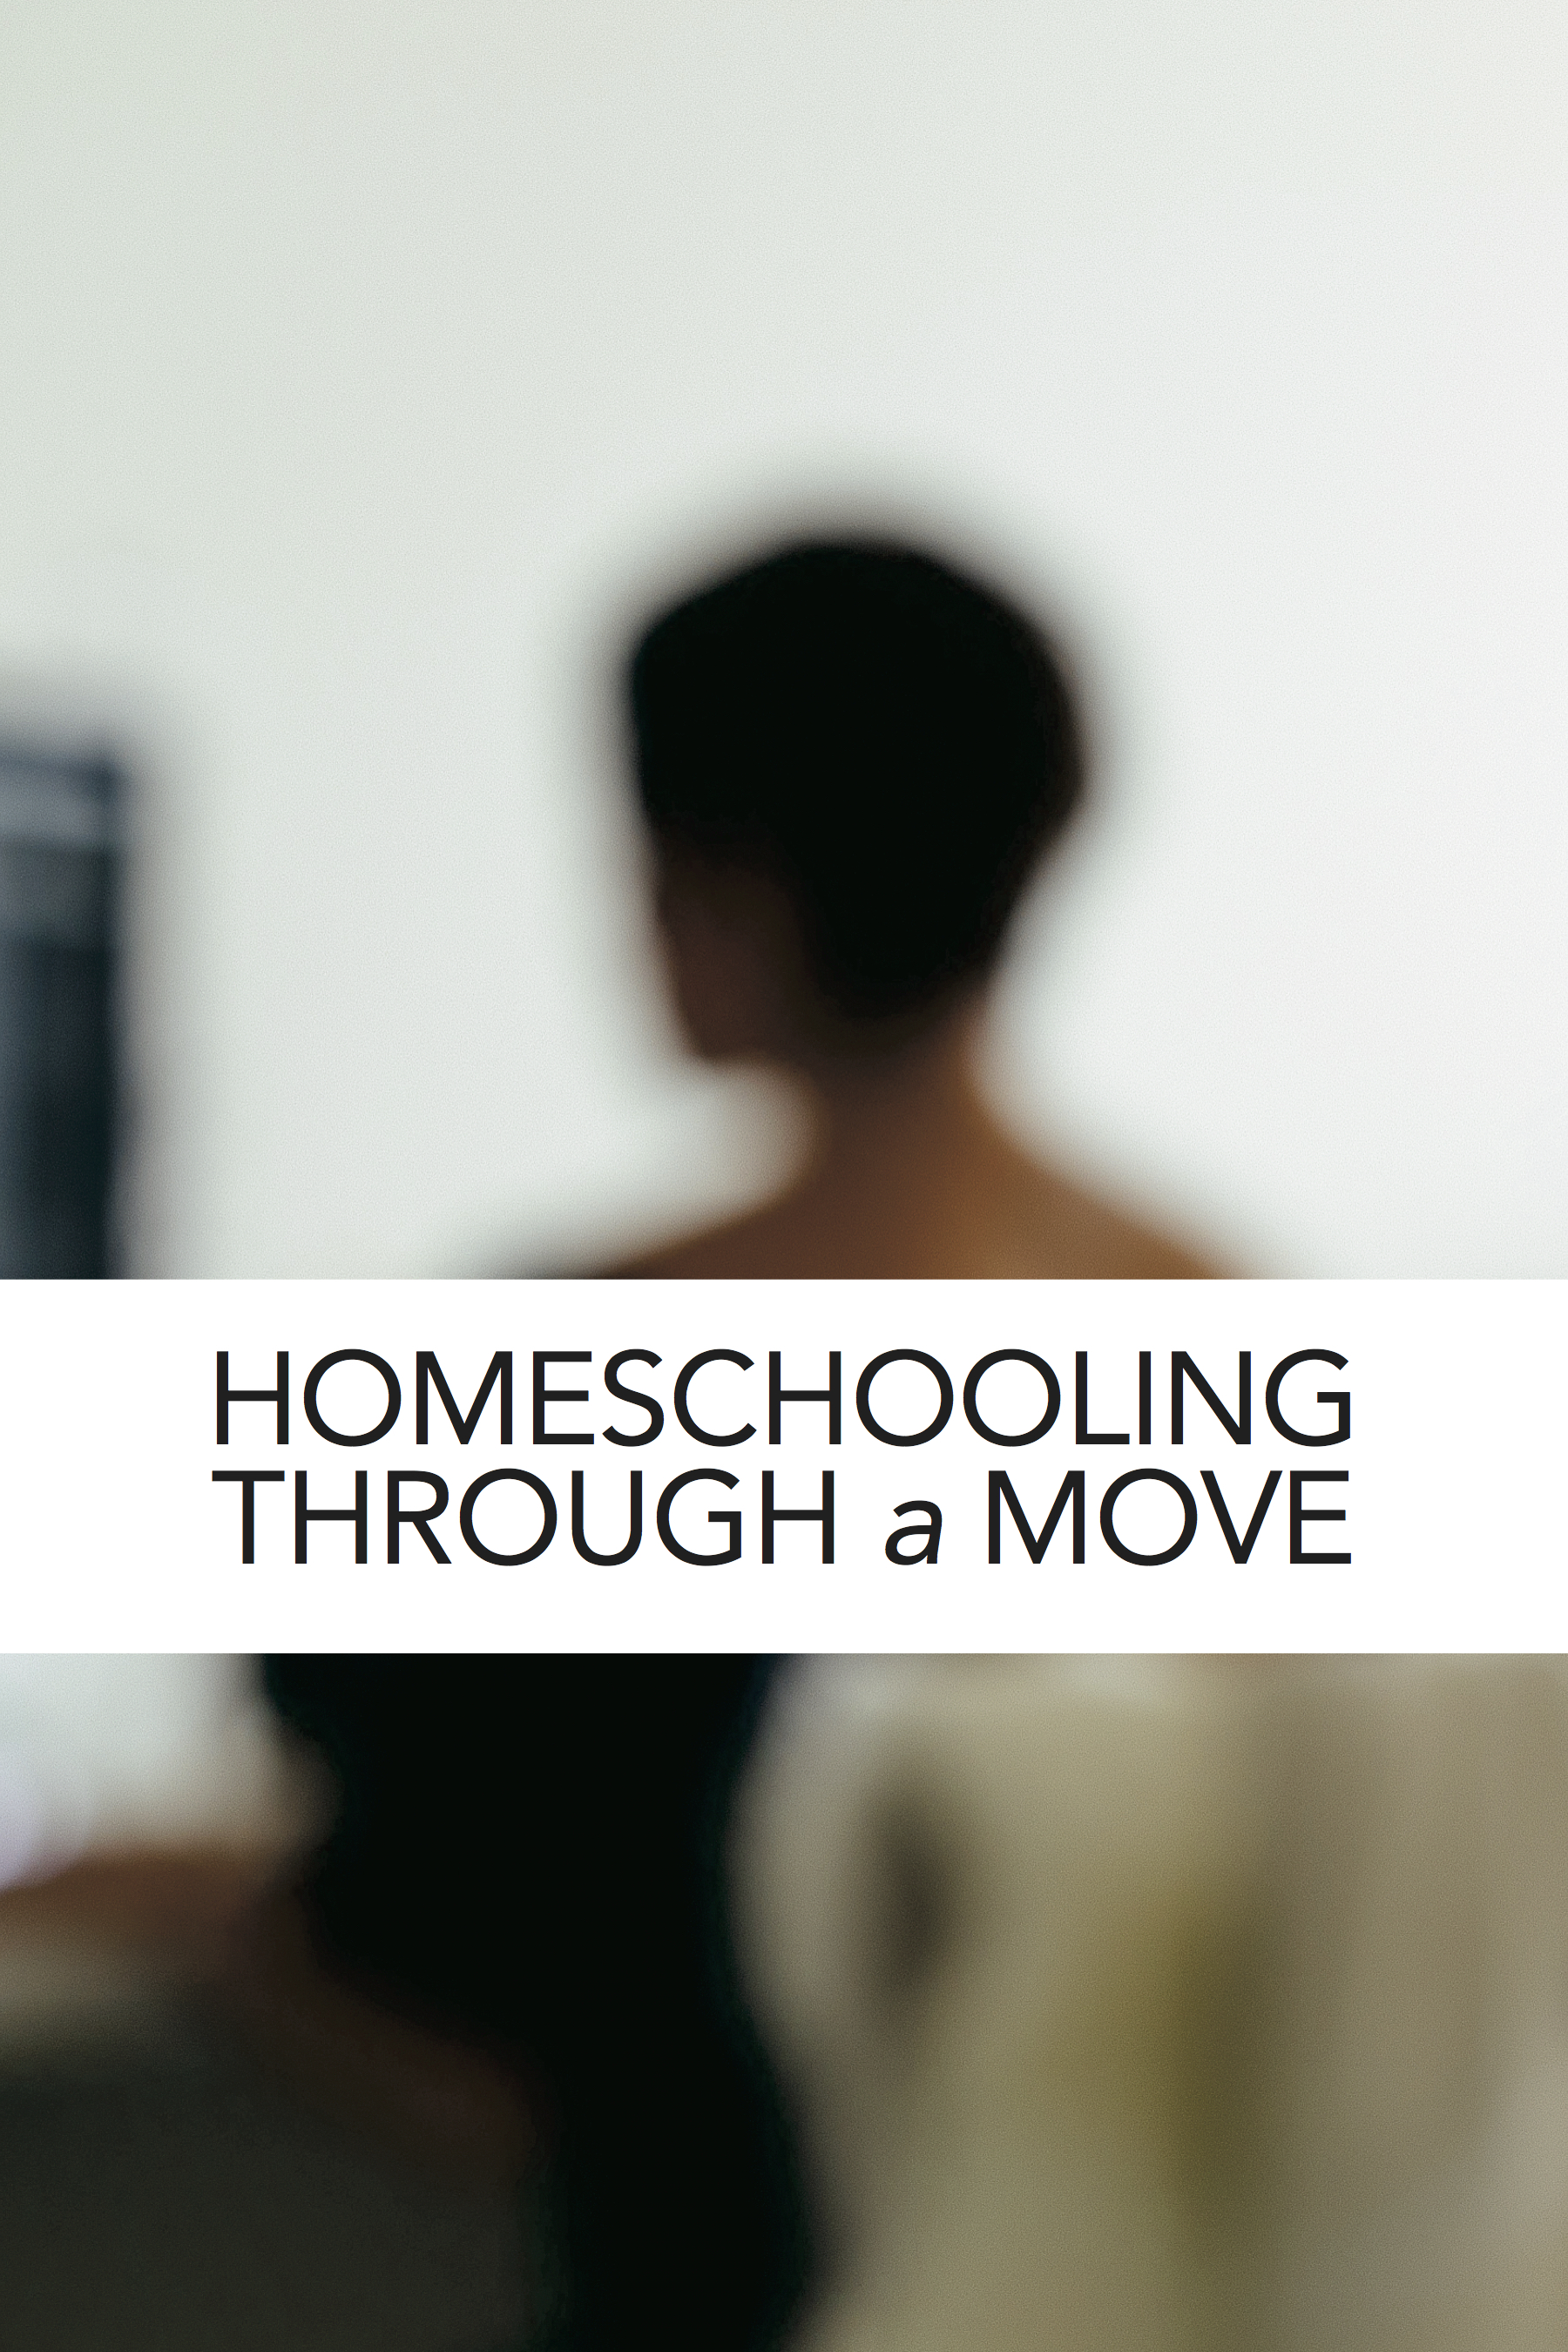 We're trying to sell our house, which means no piles of books or stinky science projects for a while. Any tips for homeschooling while your house is staged?